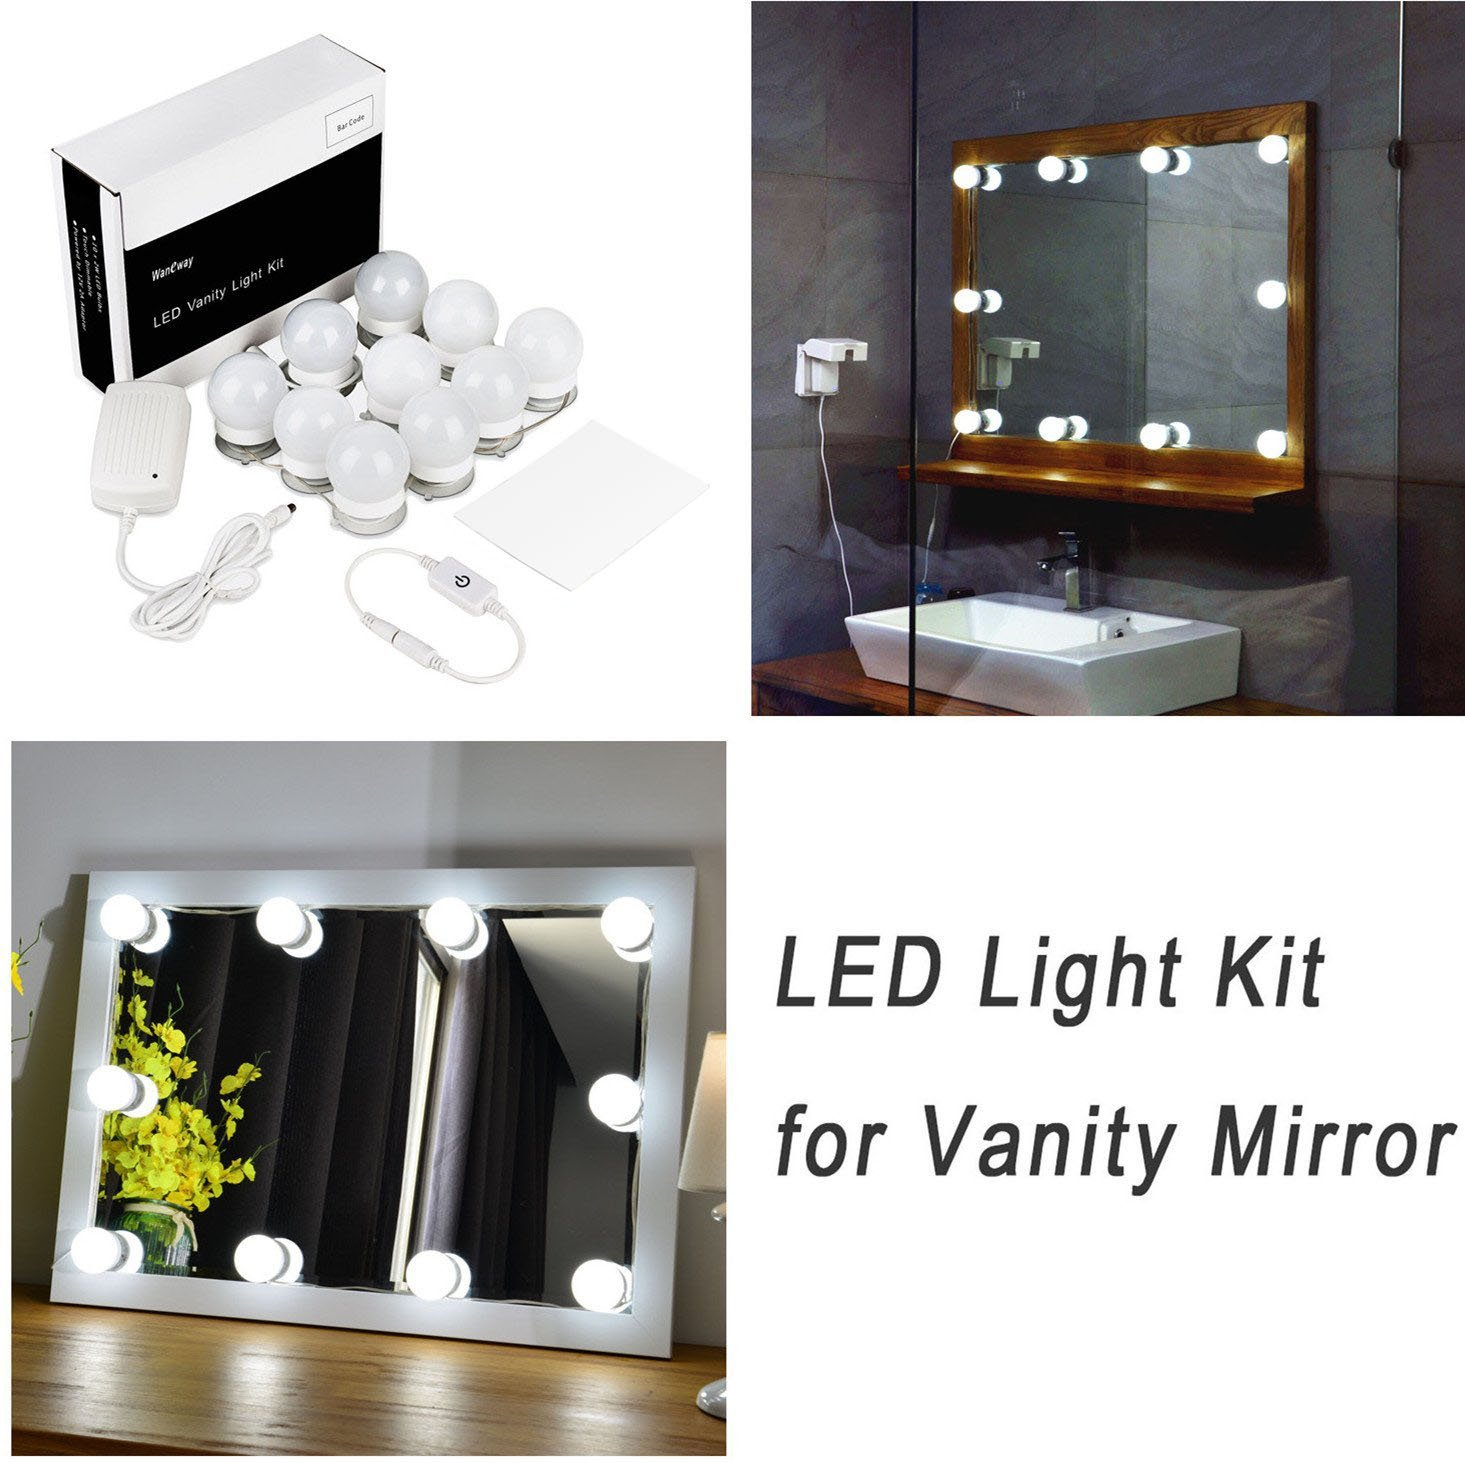 Waneway hollywood style led vanity mirror light kit for makeup waneway hollywood style led vanity mirror light kit for makeup cosmetic dressing table with dimmer and power supply plug in bathroom mirror lighting aloadofball